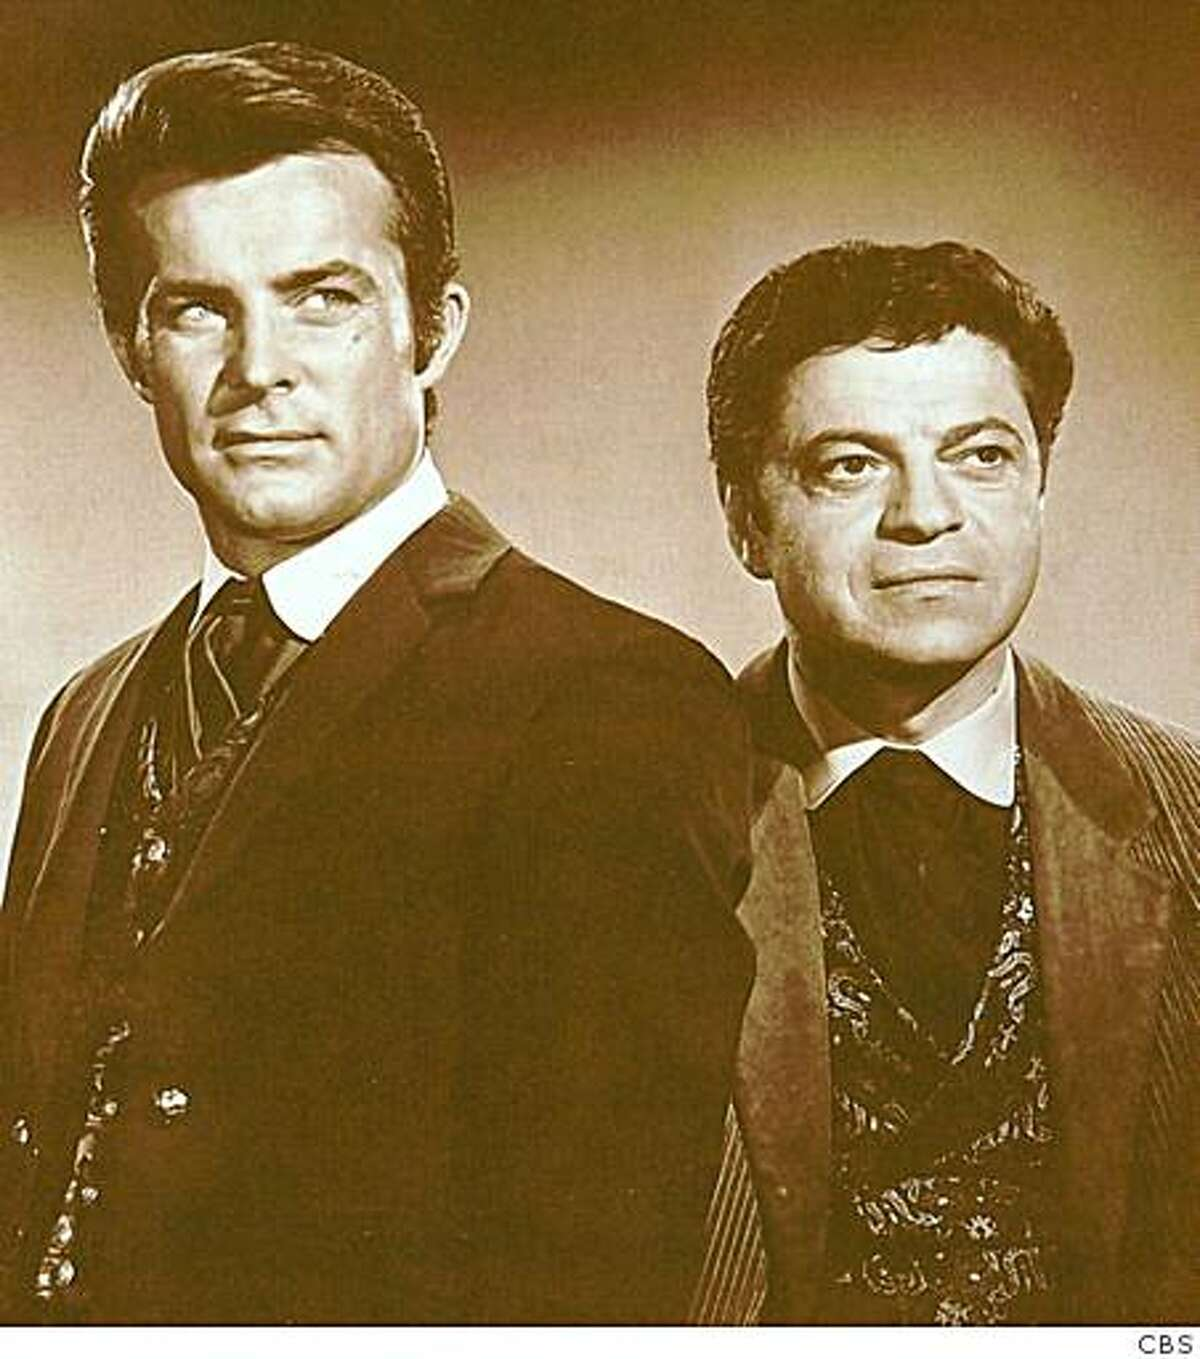 Robert Conrad and Ross Martin in the 1960s series